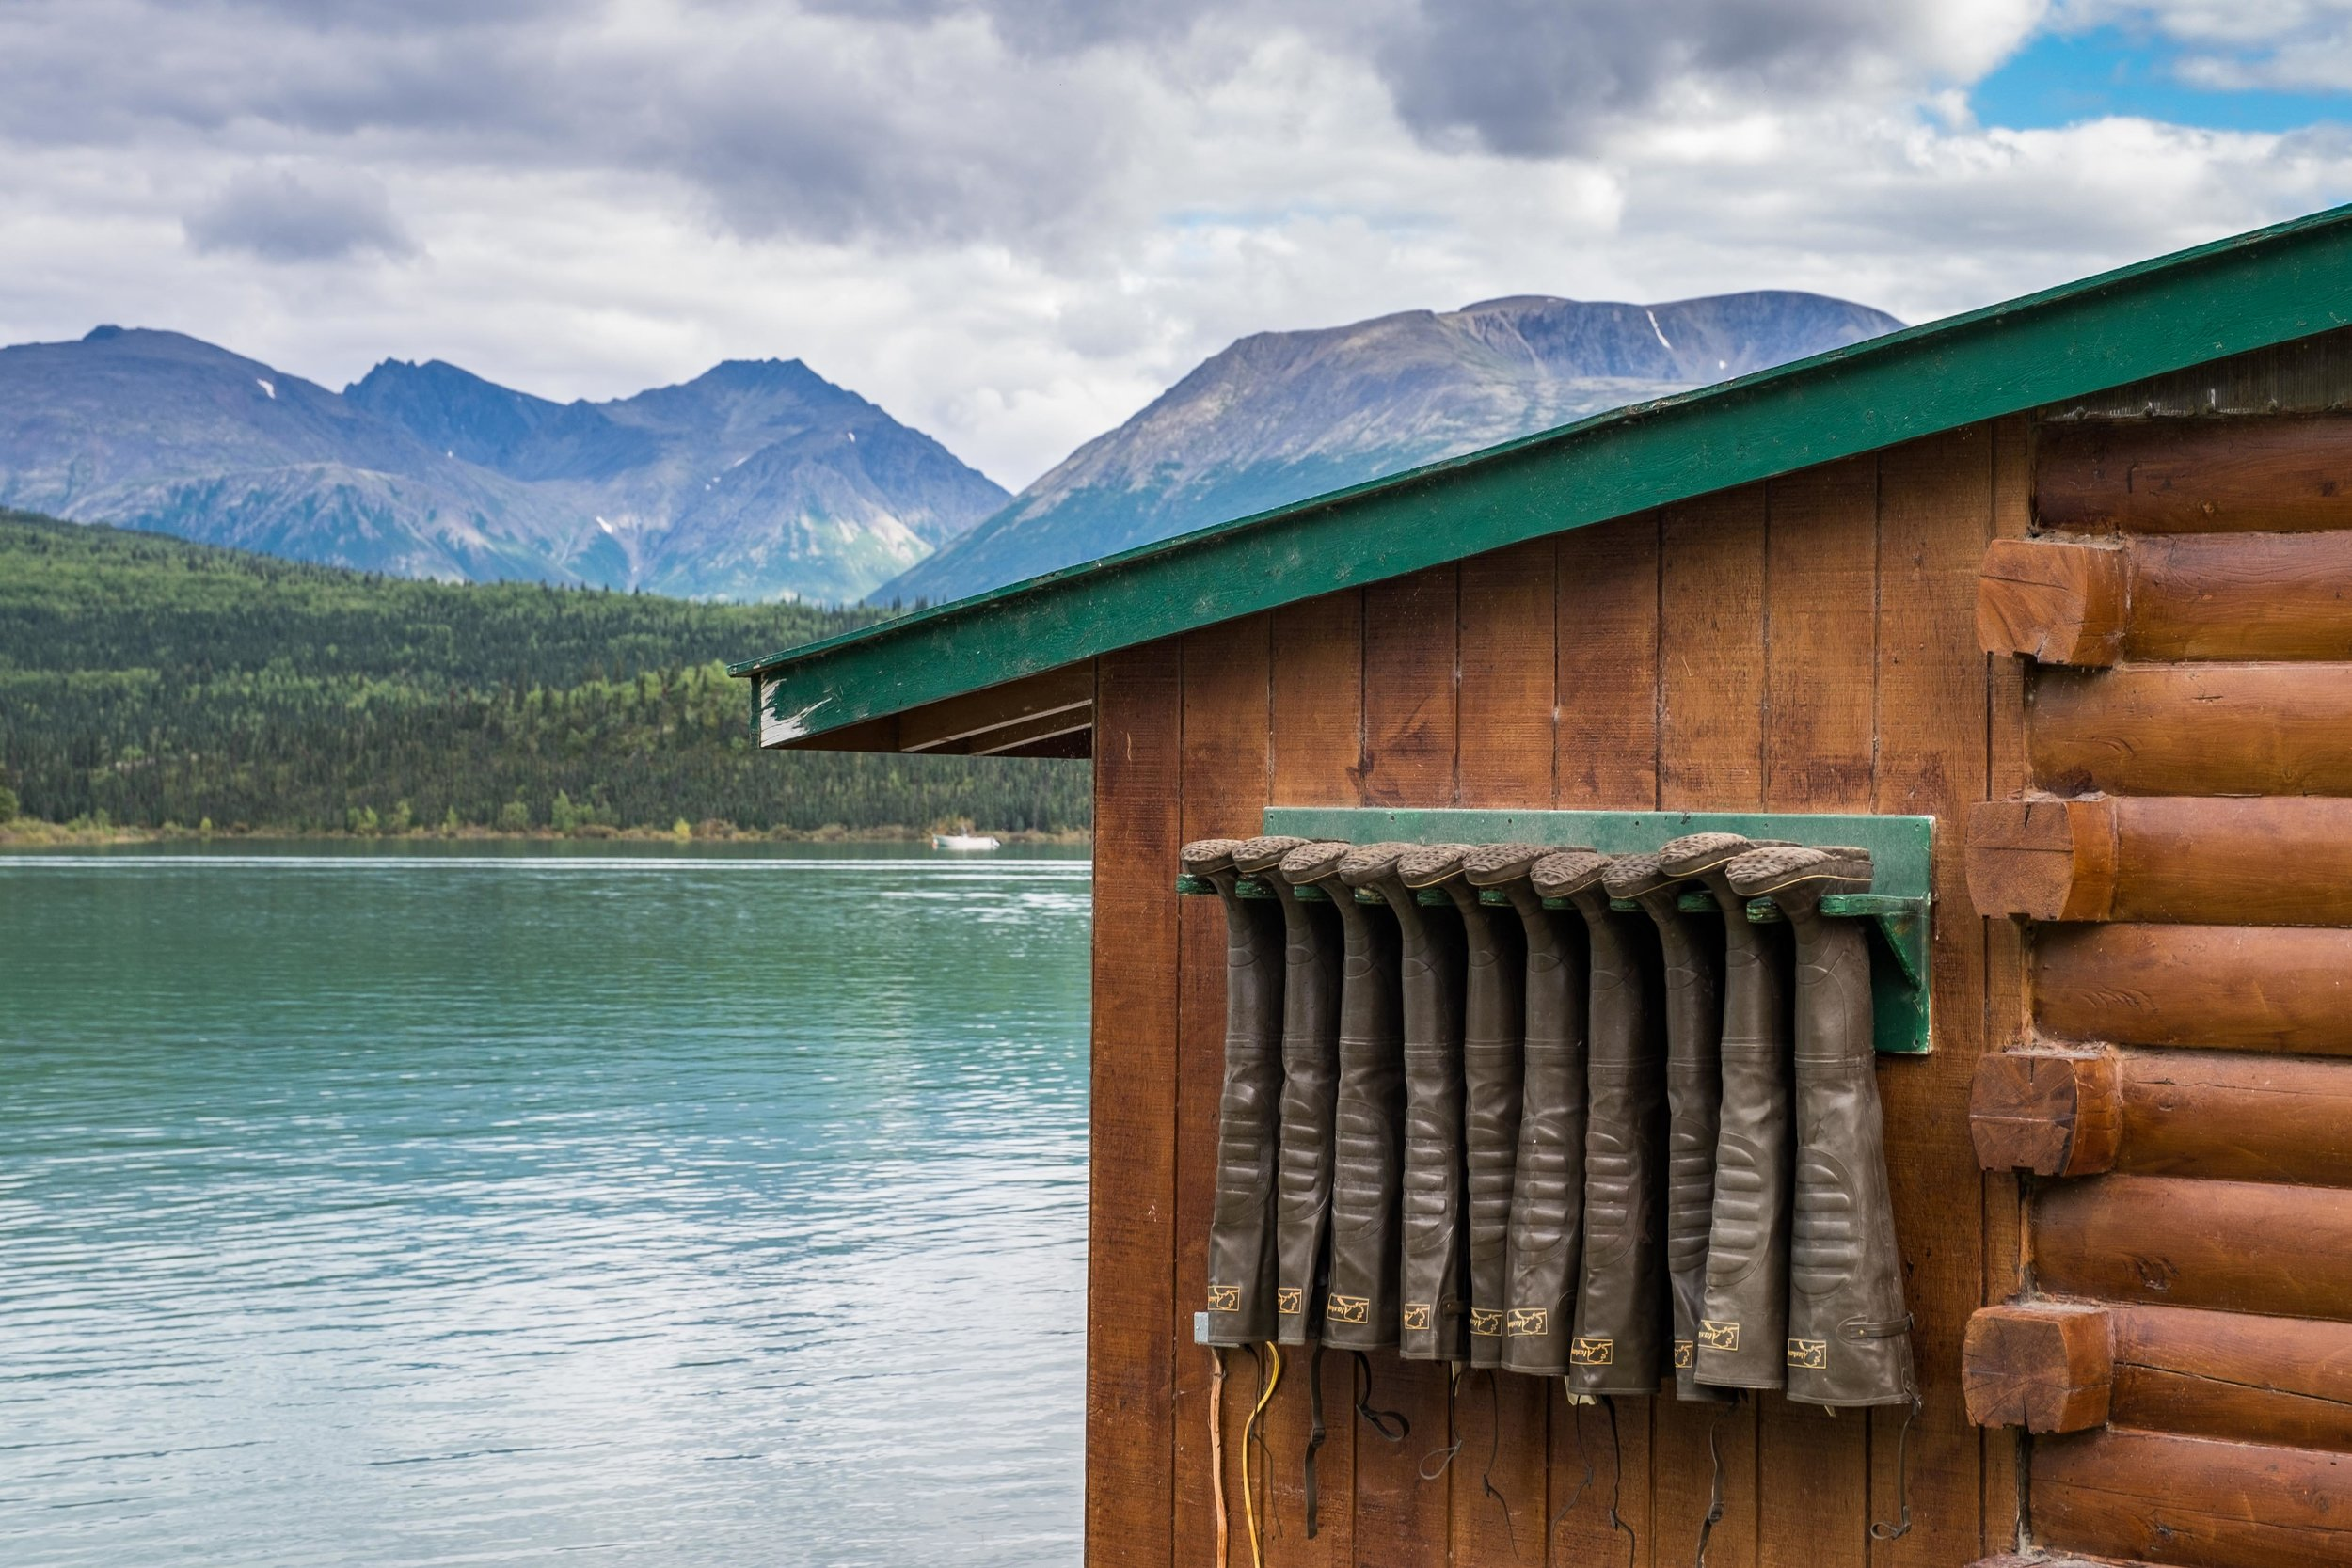 Muck boots hung up to dry after a day of exploring.